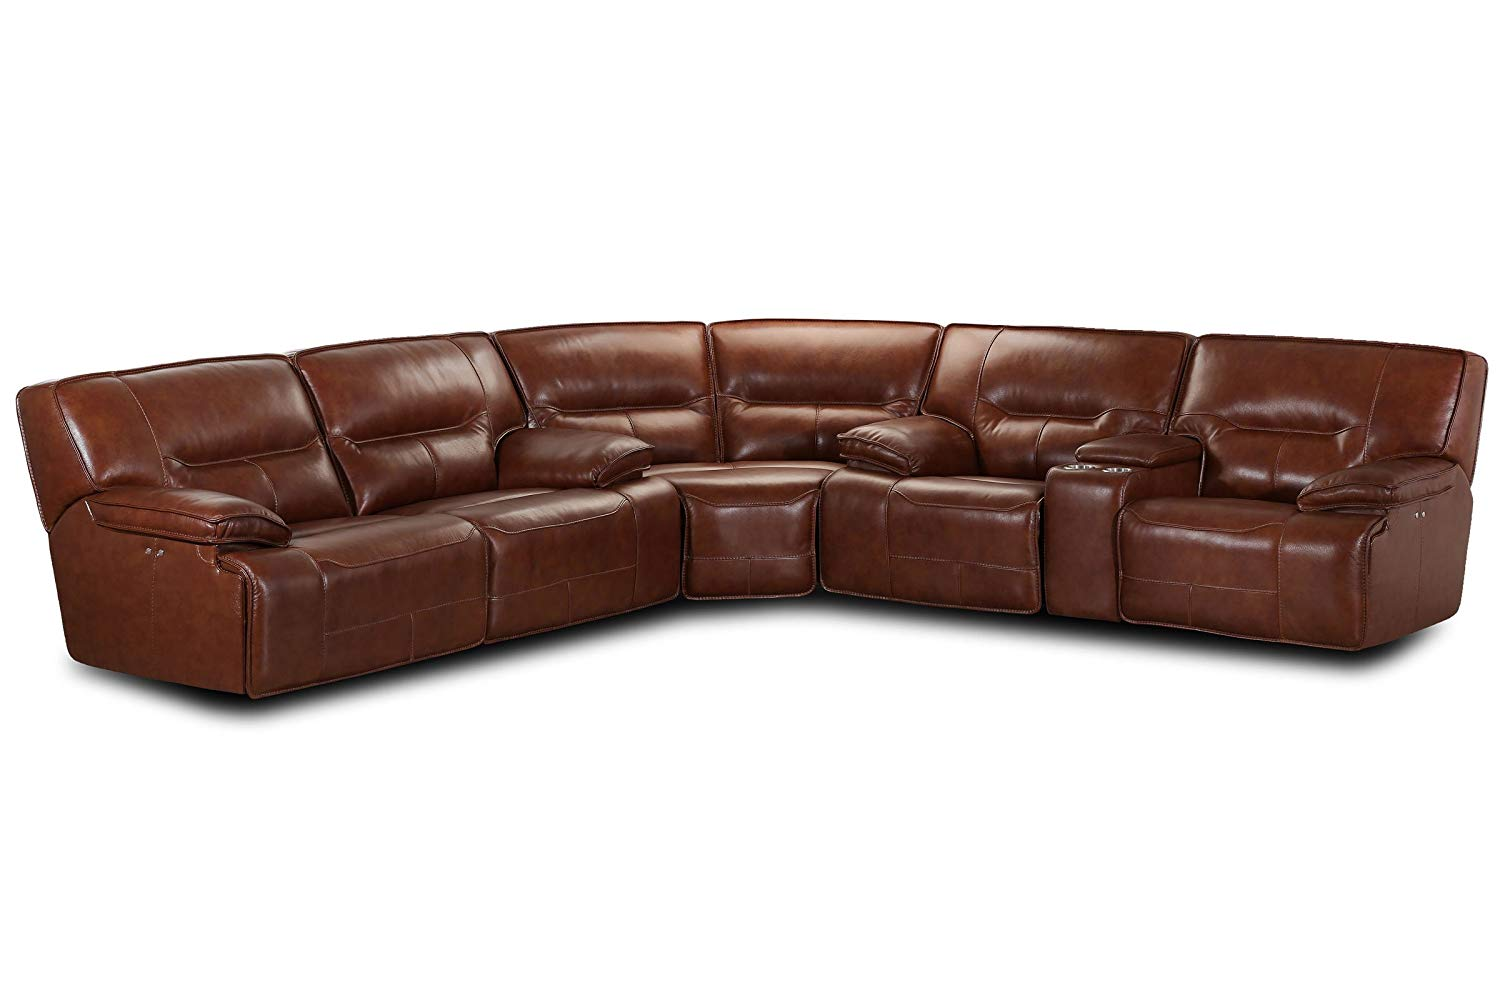 lane dual power reclining sofa wesley hall signature cheap sectional find deals get quotations drake leather